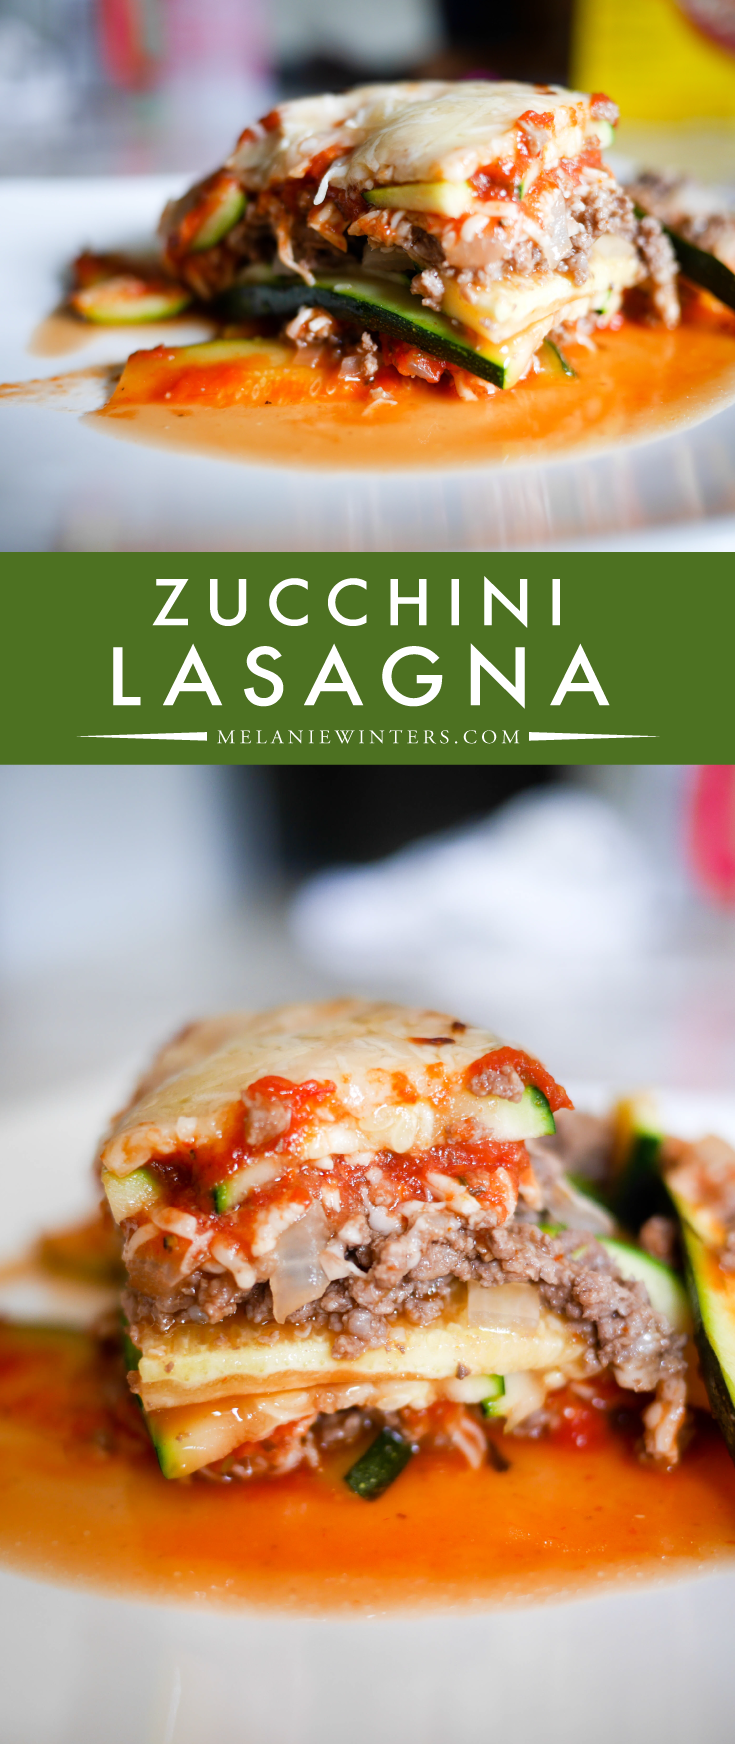 An amazingly delicious, low carb alternative to lasagna. Layers of zucchini, ground beef and pasta sauce make this a simple semi-homemade dinner that you'll want to make again and again.